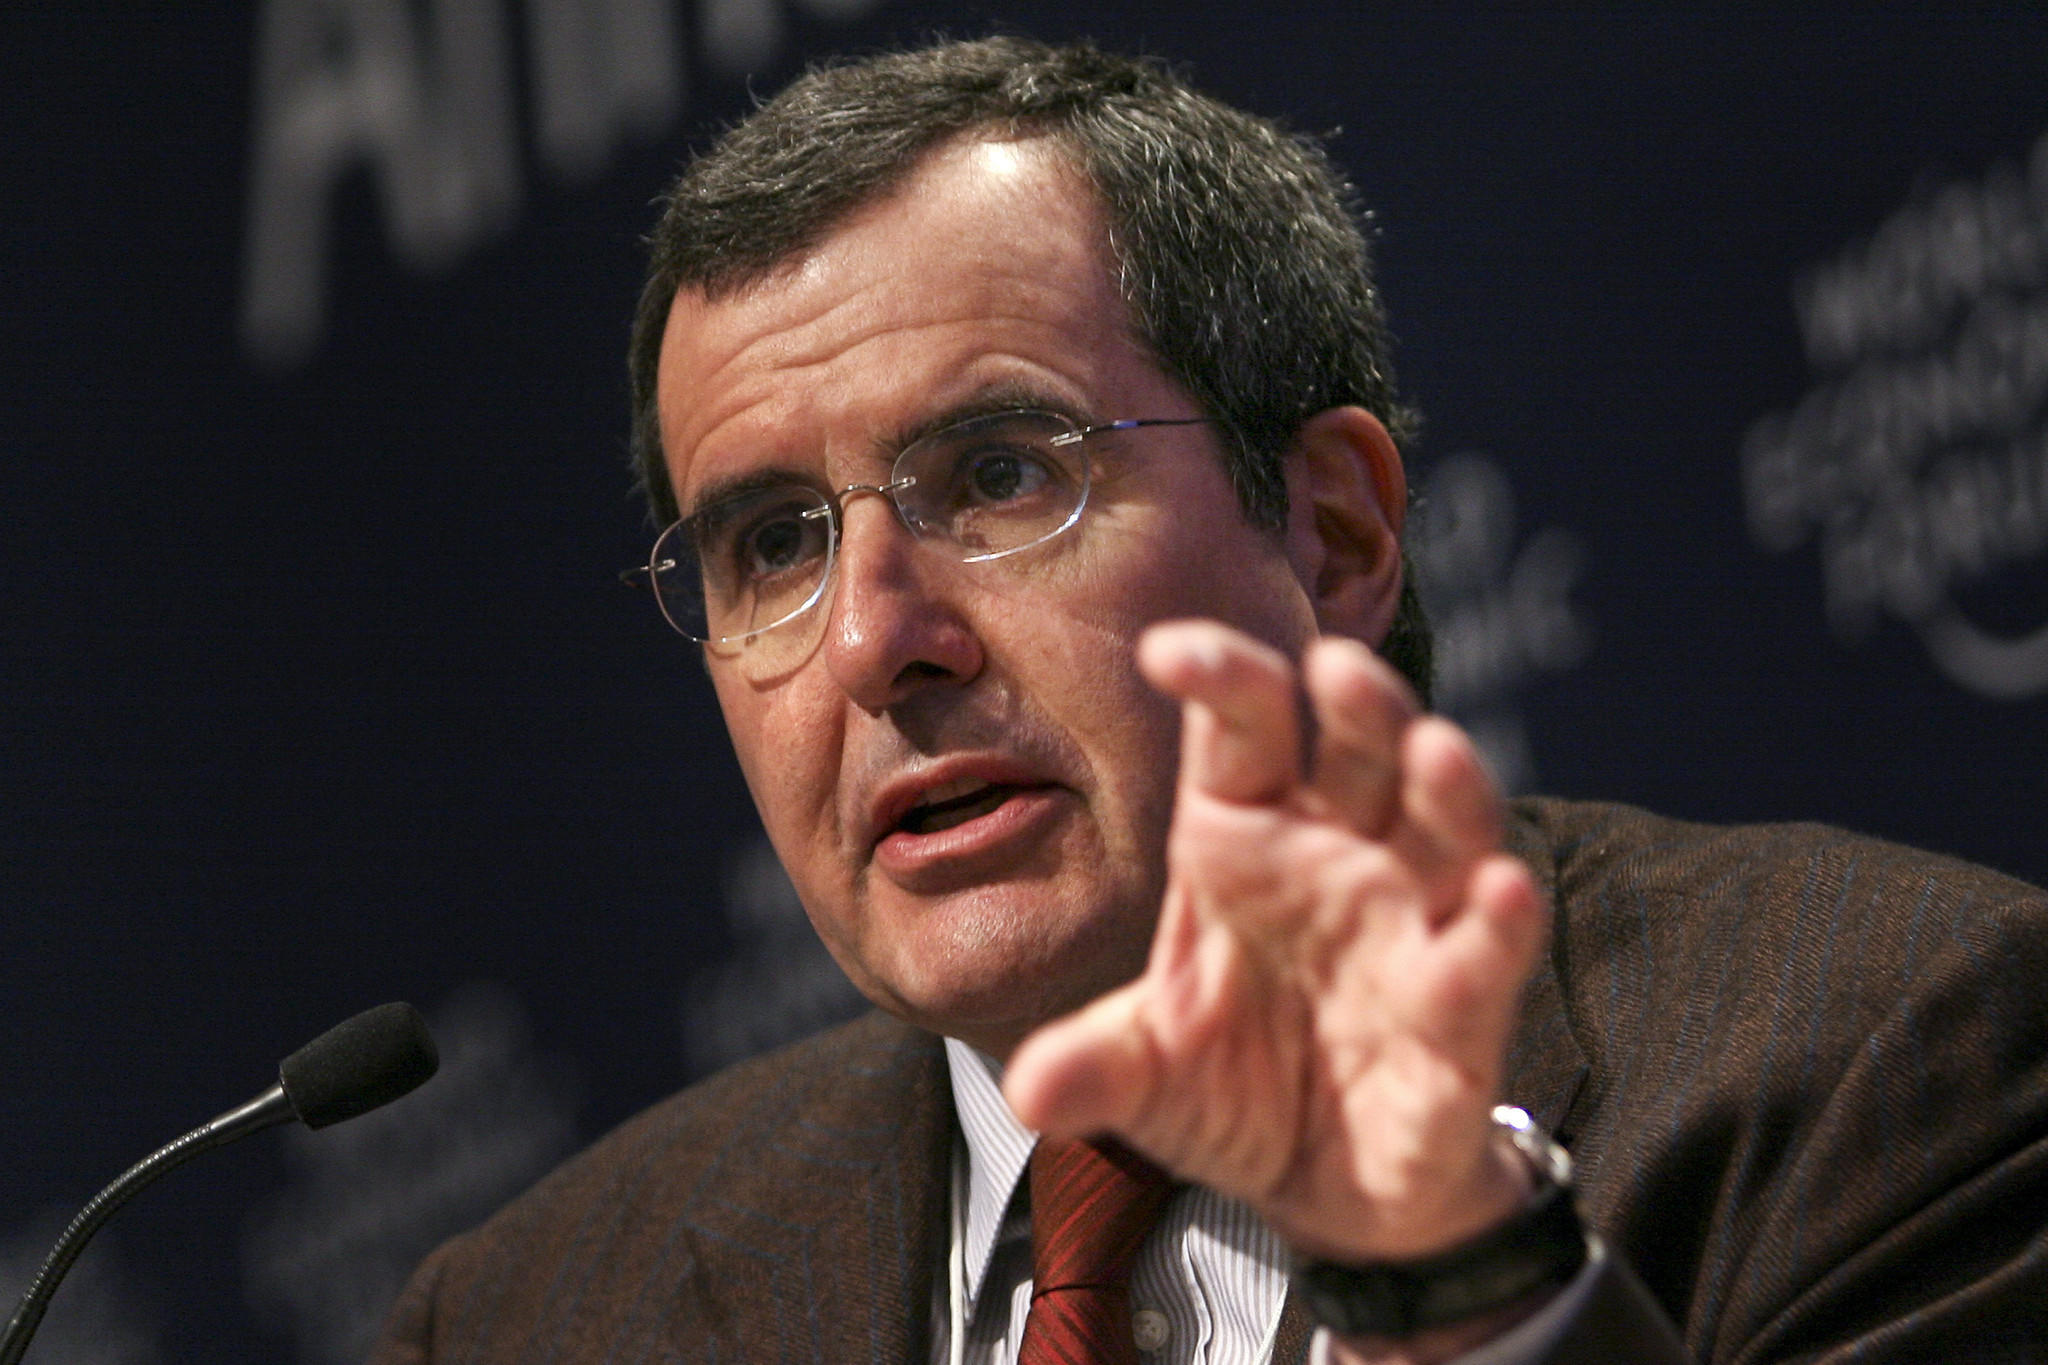 Peter Chernin, chief executive of the Chernin Group, attends an economic forum in 2009; the Chernin Group and AT&T on Tuesday announced a venture to invest $500 million in online video services.